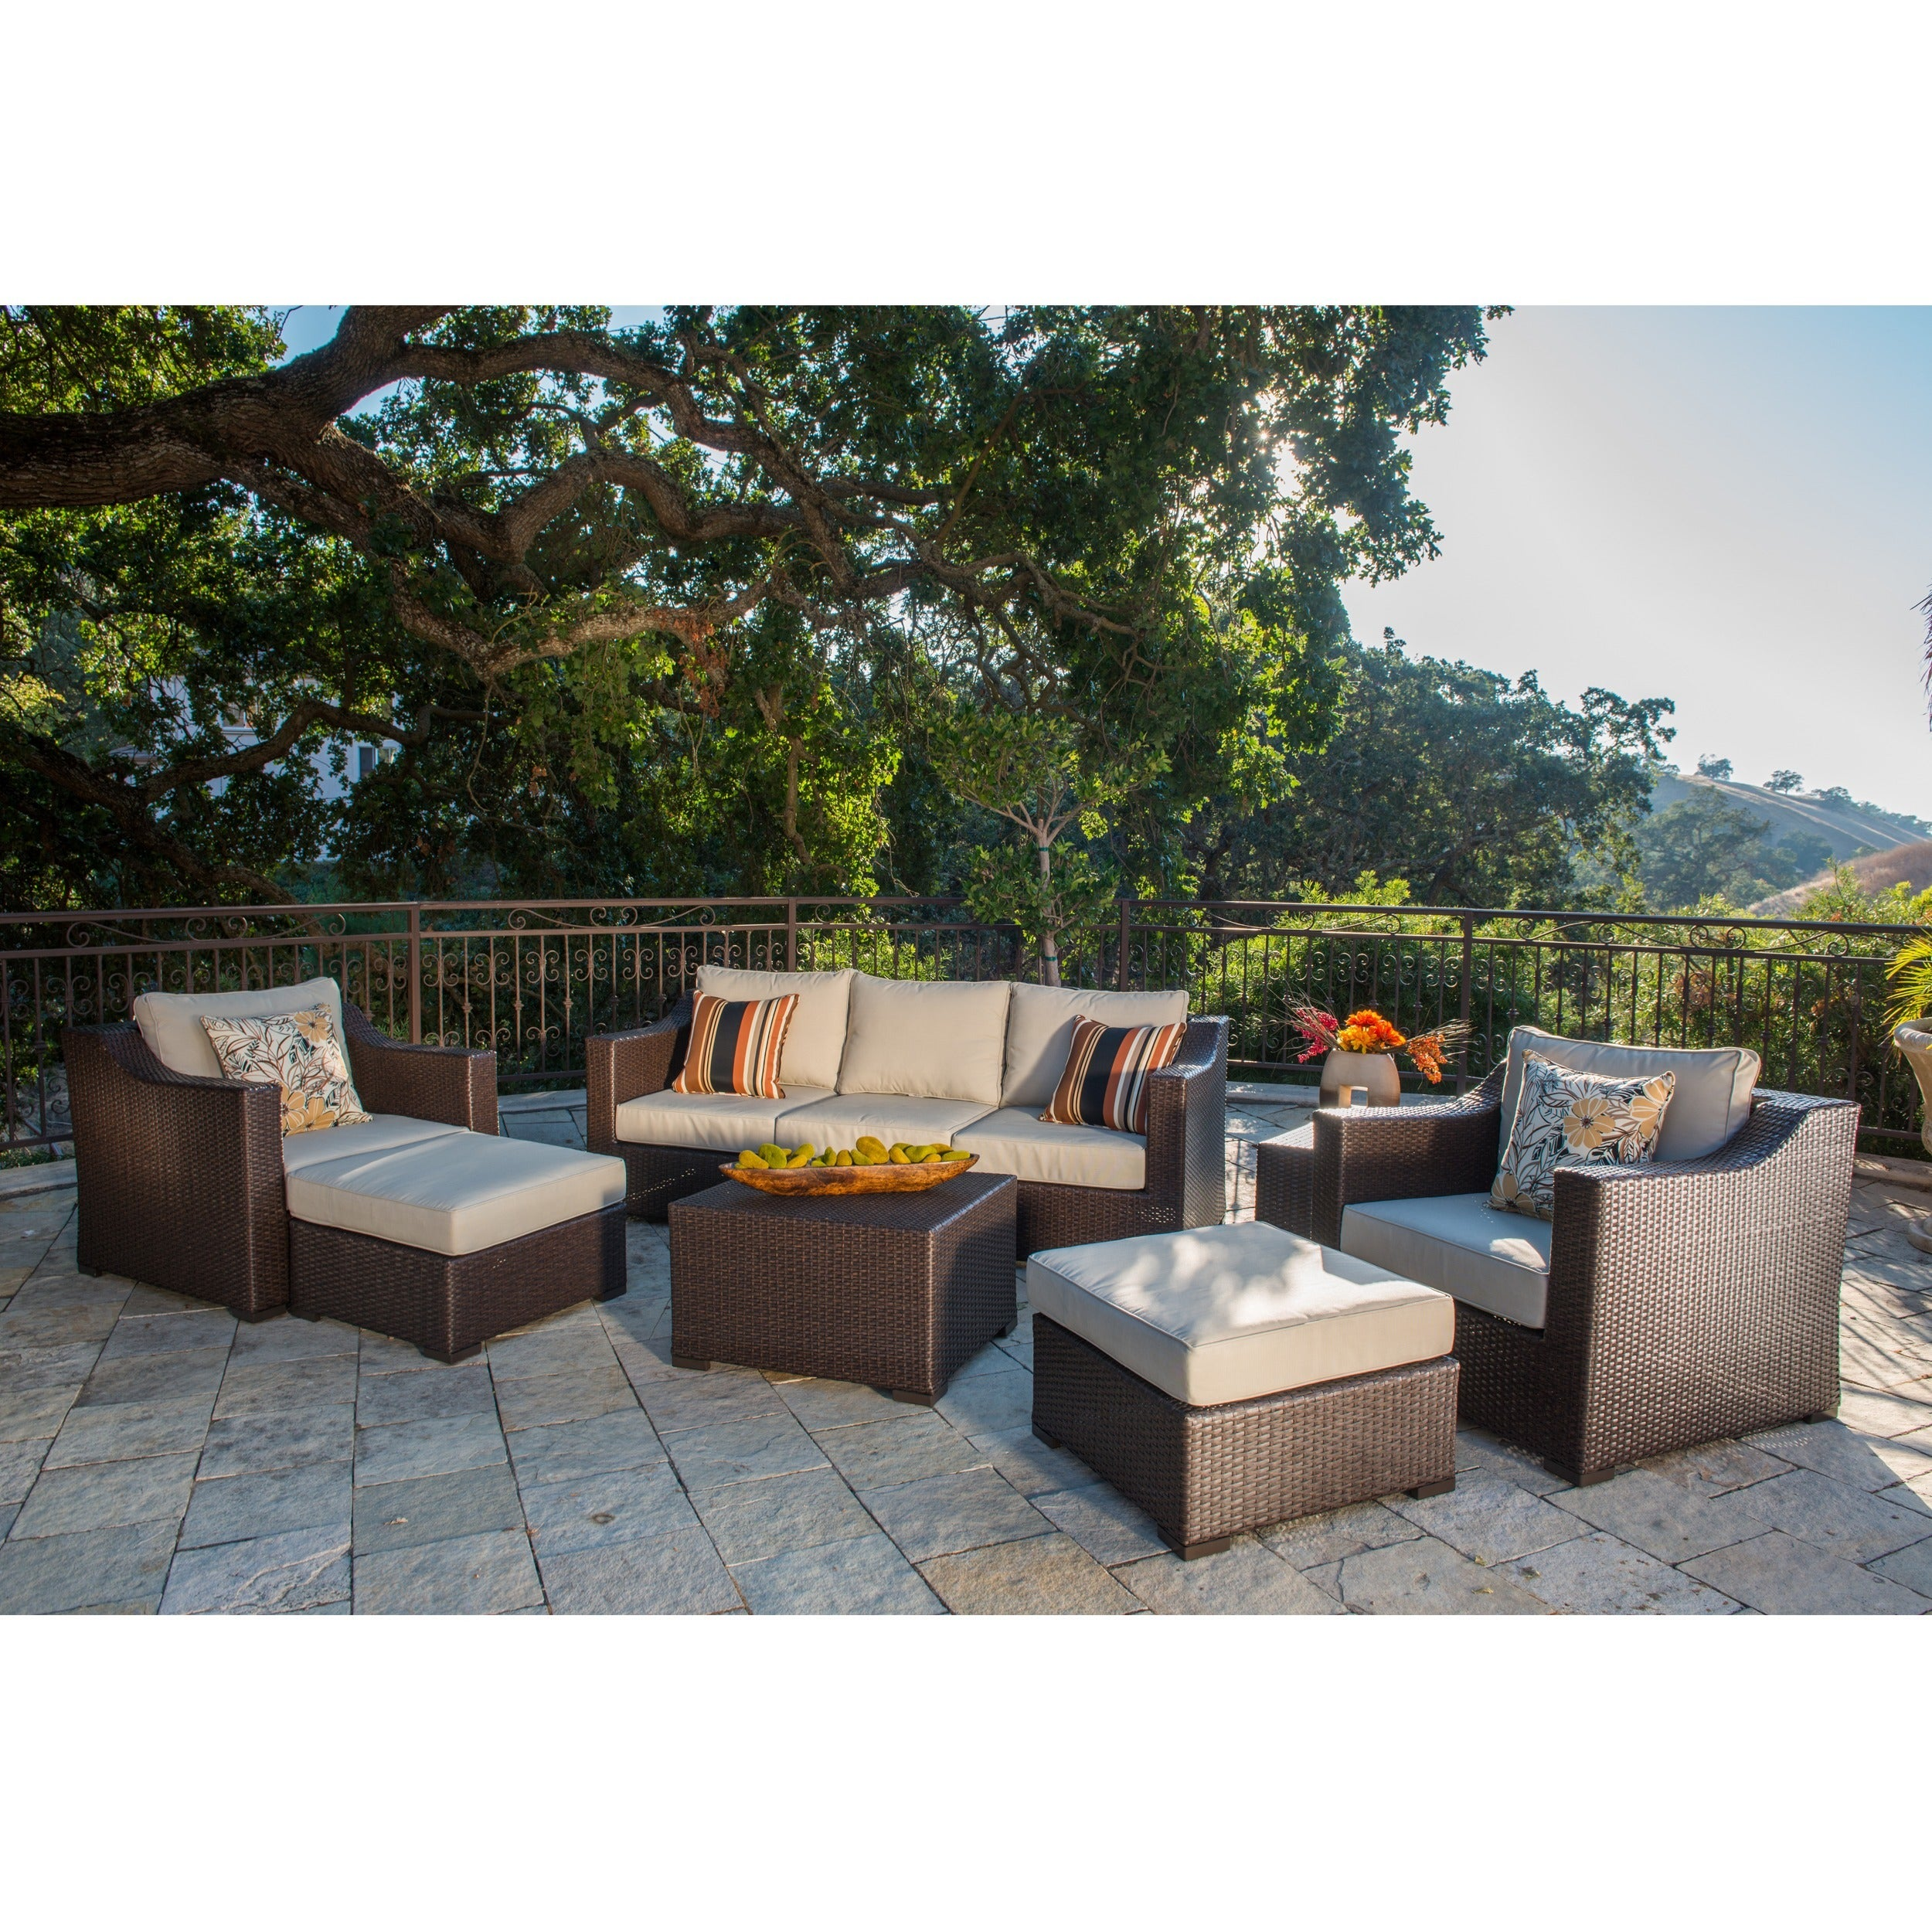 Corvus Matura 9 piece Brown Wicker Patio Furniture with Beige